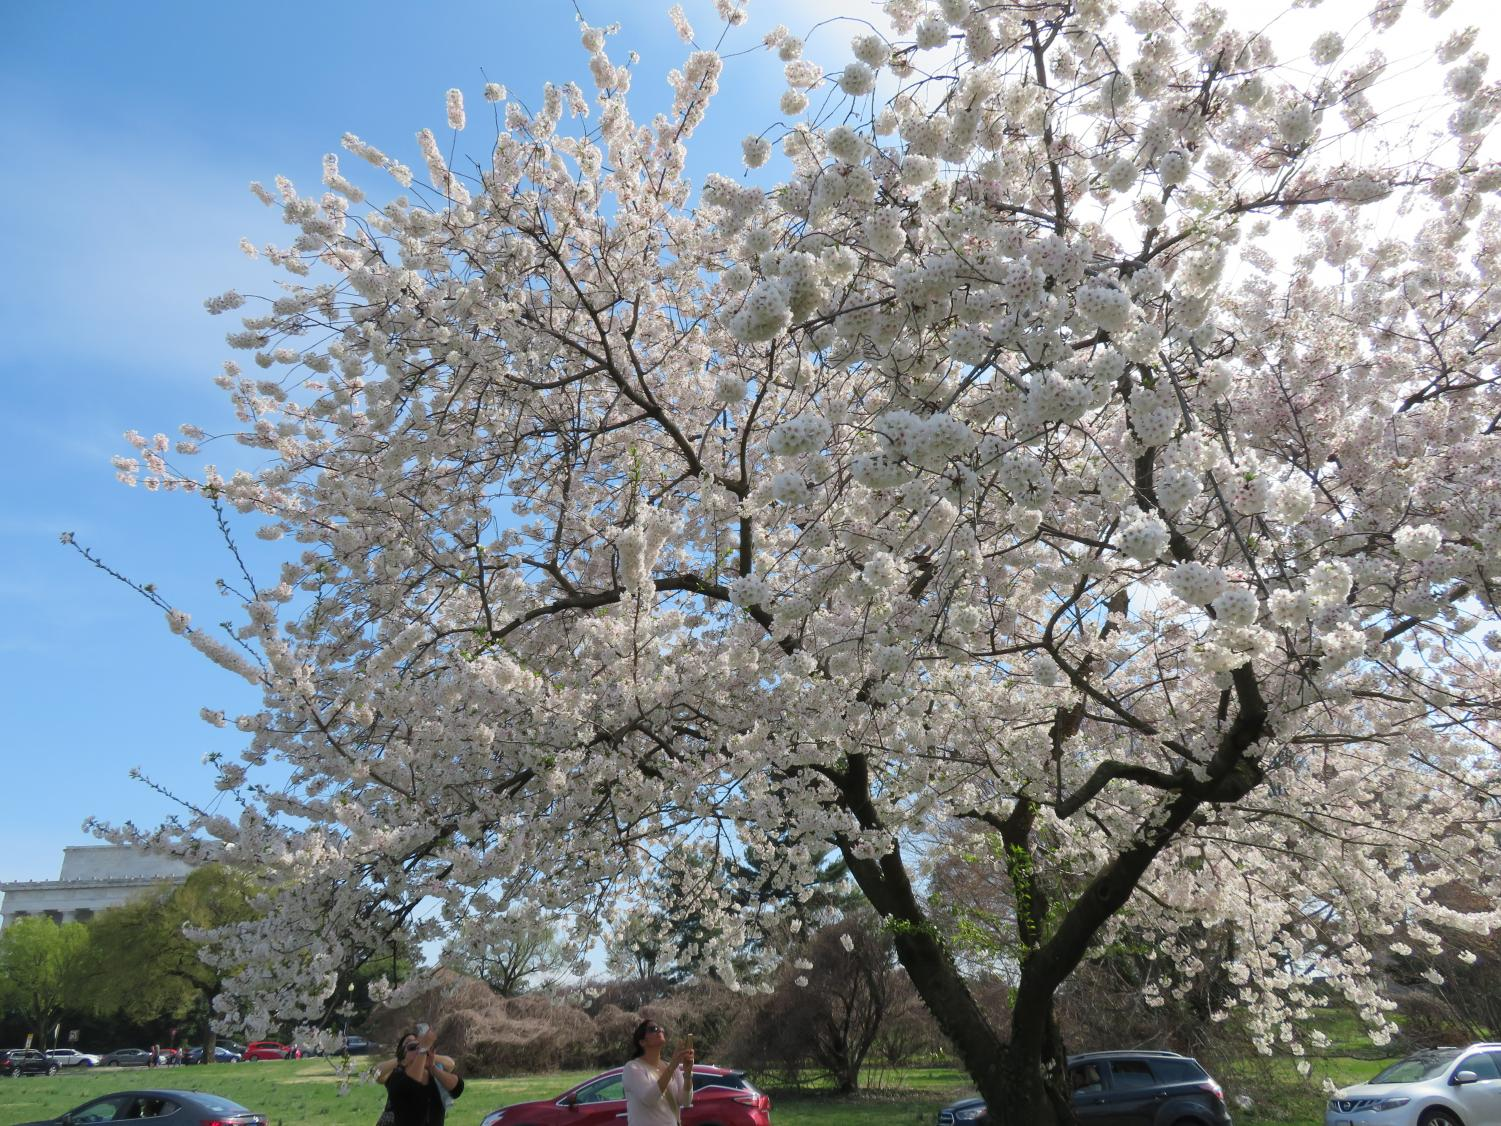 There+are+200+different+varieties+of+cherry+blossom+trees.